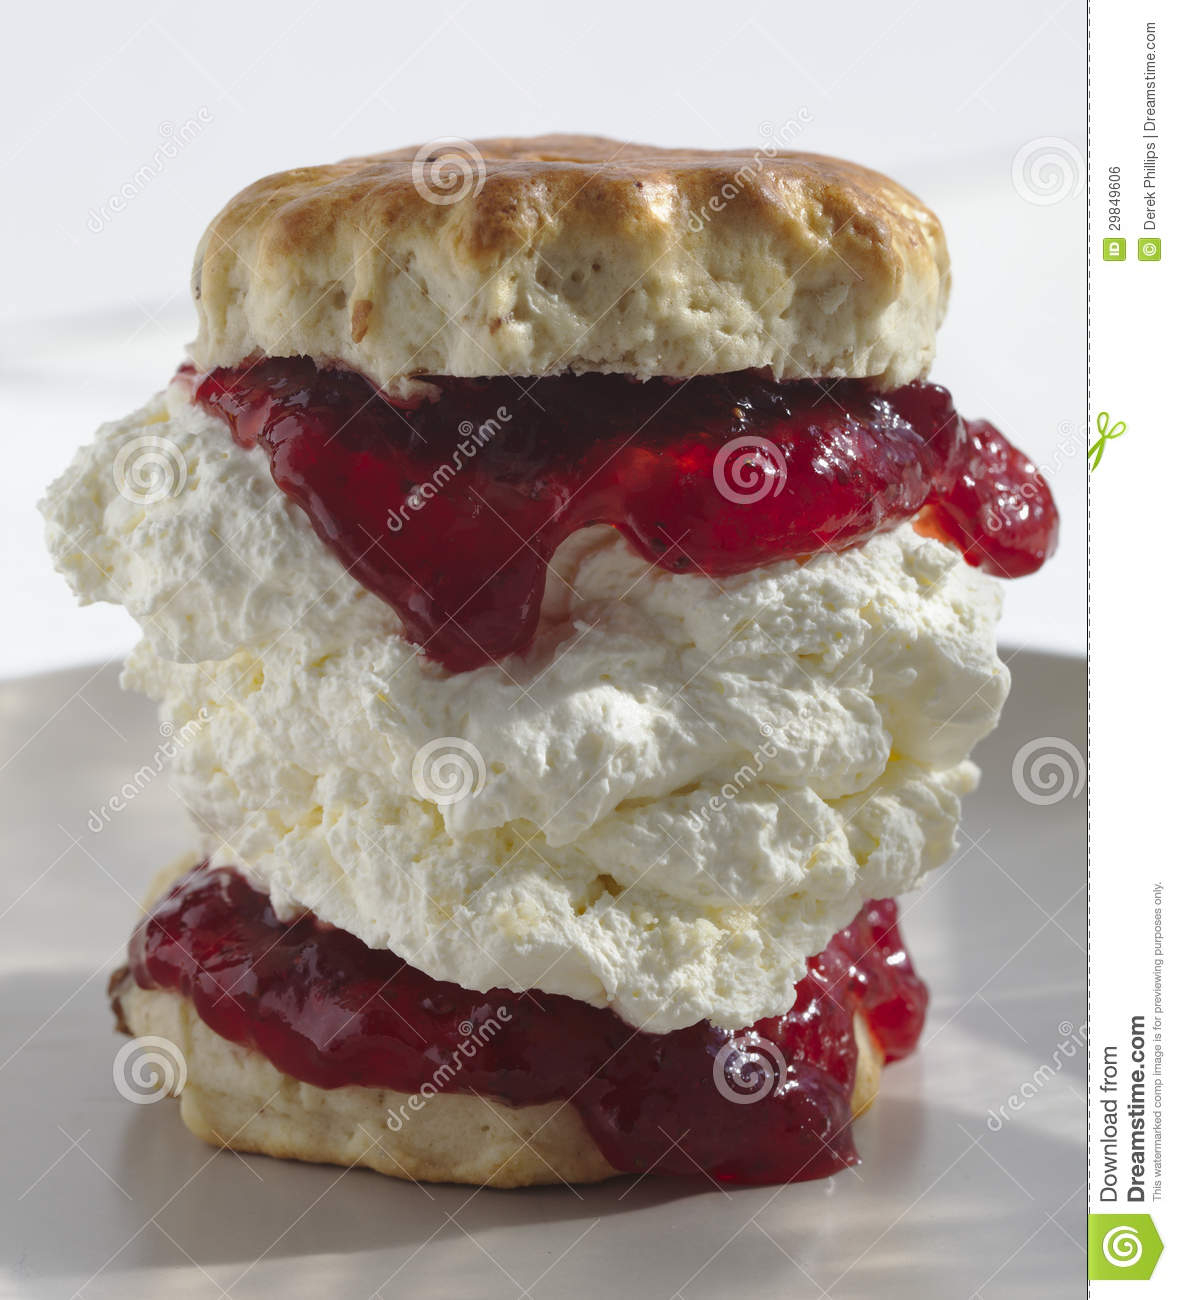 Giant Scone with Cream and Jam